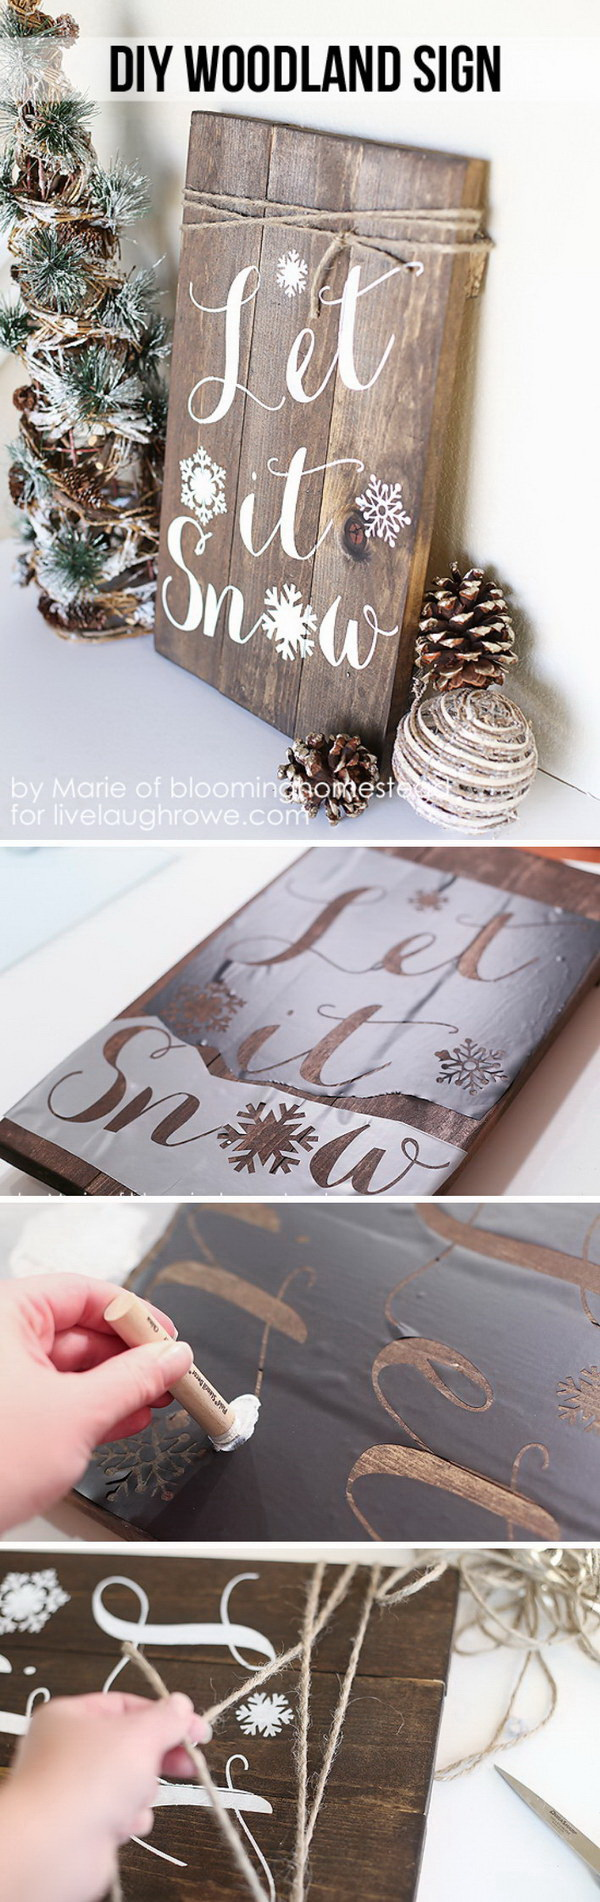 Let It Snow Woodland Sign. Make this fabulous and super fun DIY Winter Woodland Sign for the upcoming holidays! What you can do with some wood, stain and paint!